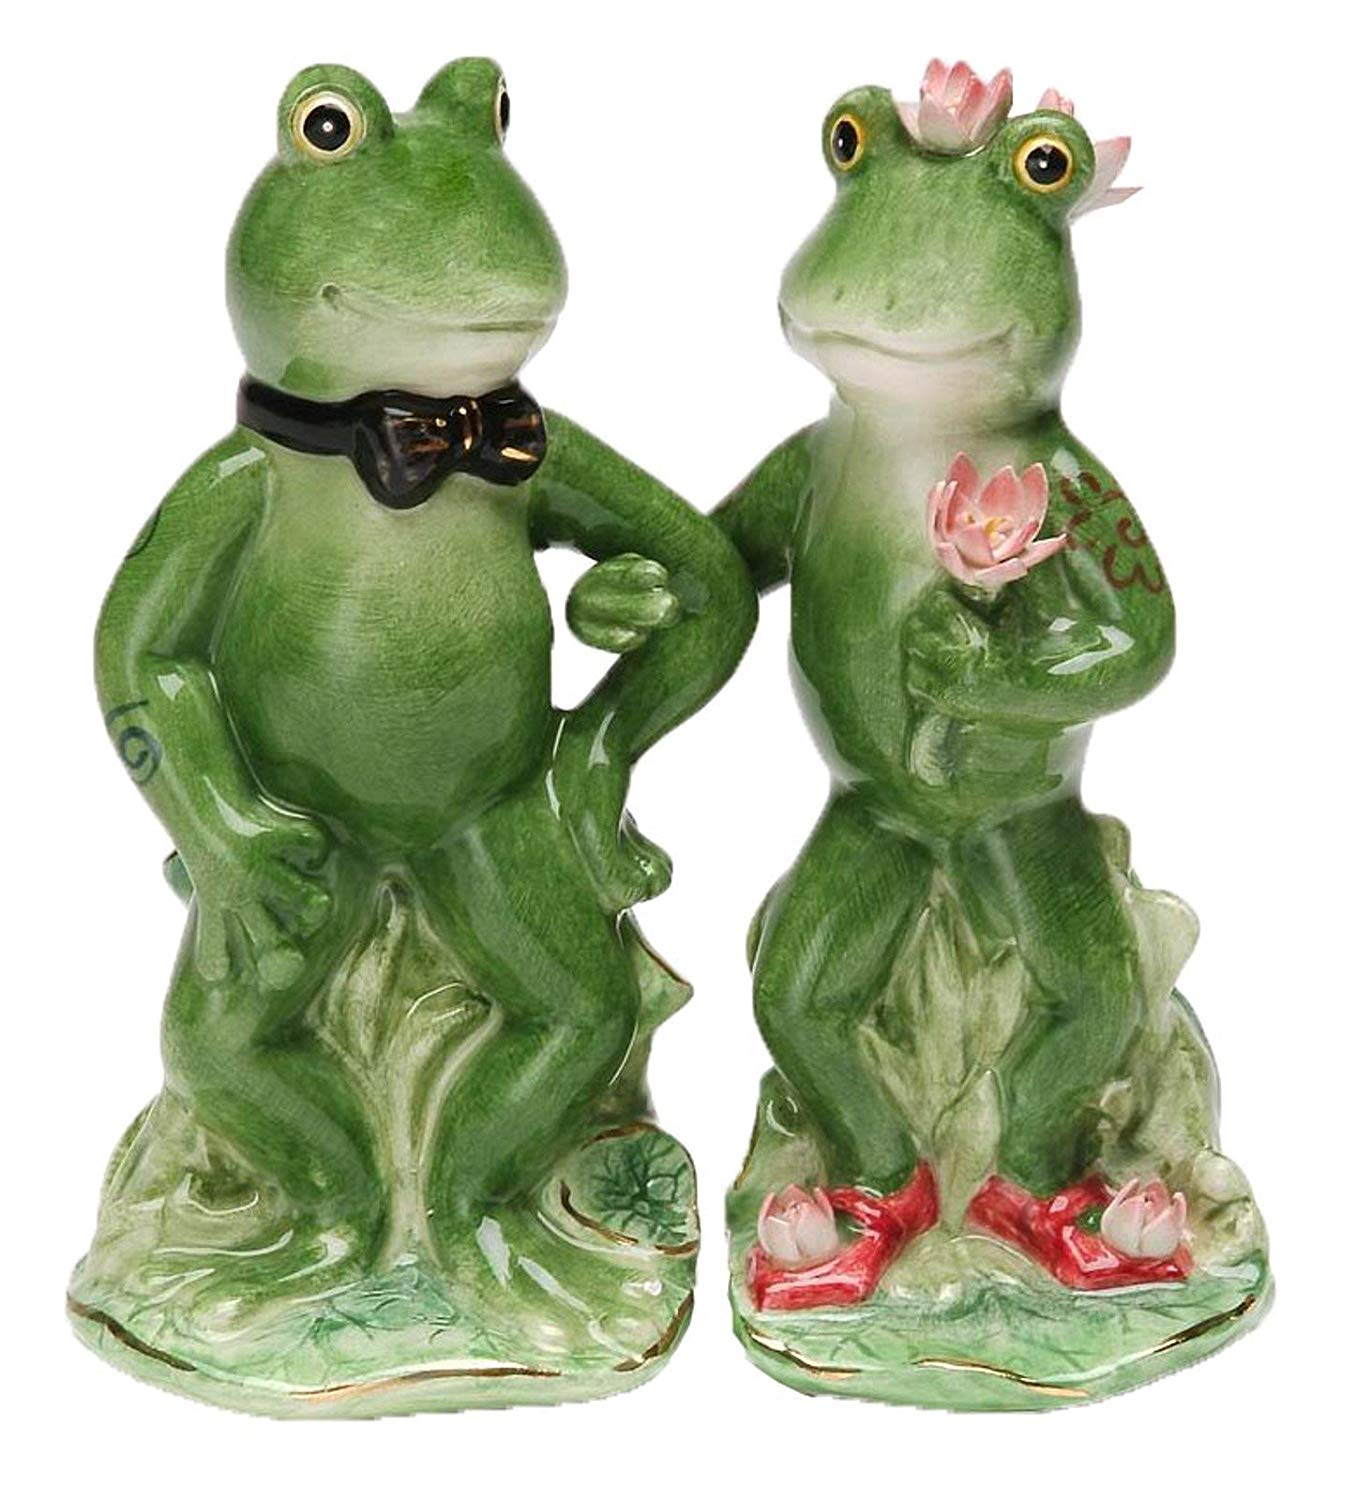 """4.5 Inch Bride and Groom """"Alfrogo & Frogalina"""" Salt and Pepper Shakers"""